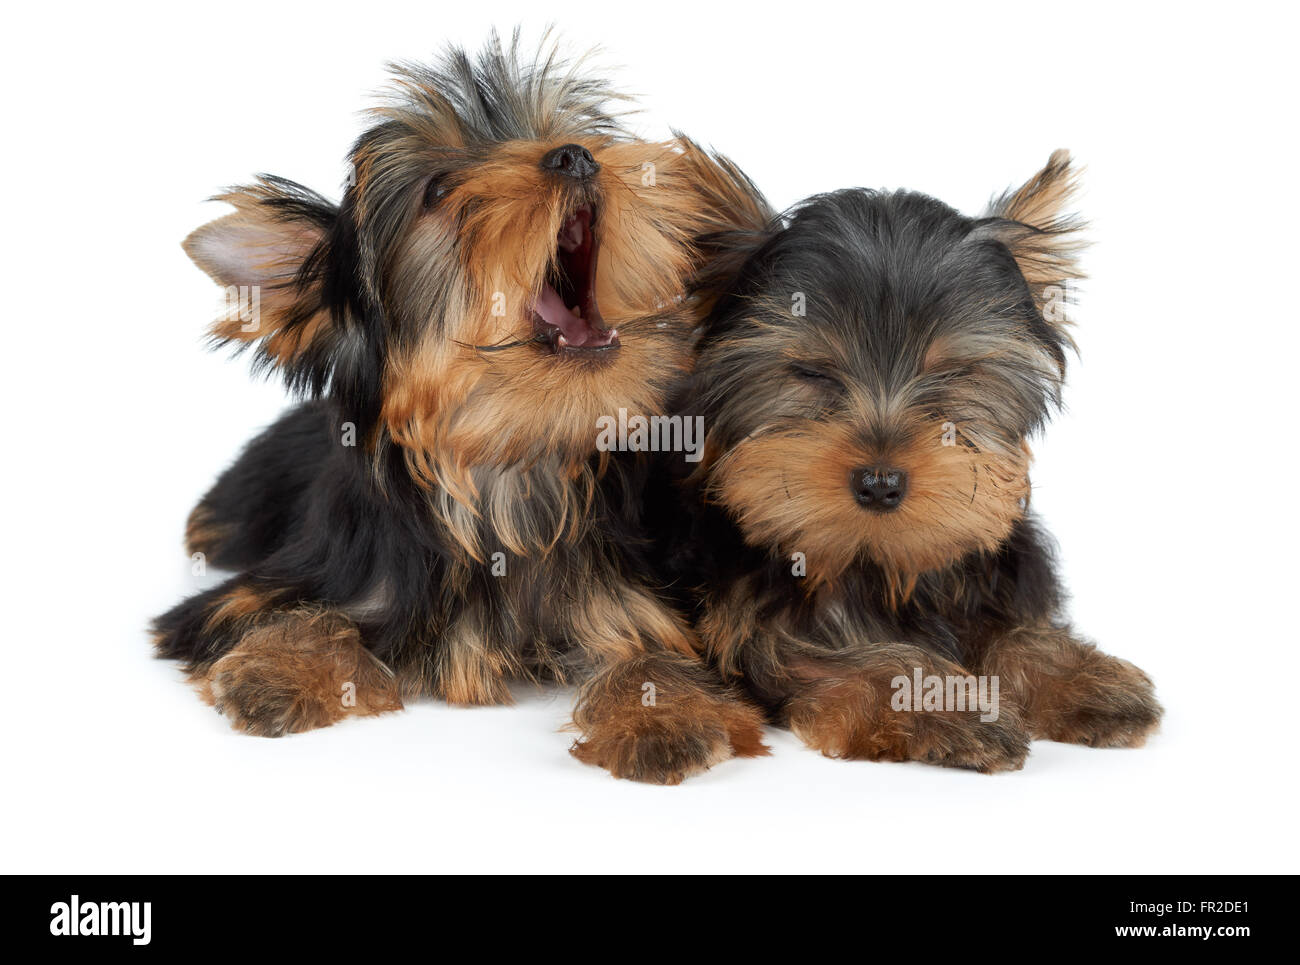 Two puppies of the Yorkshire Terrier. One puppy yawns, the other closed eyes. - Stock Image